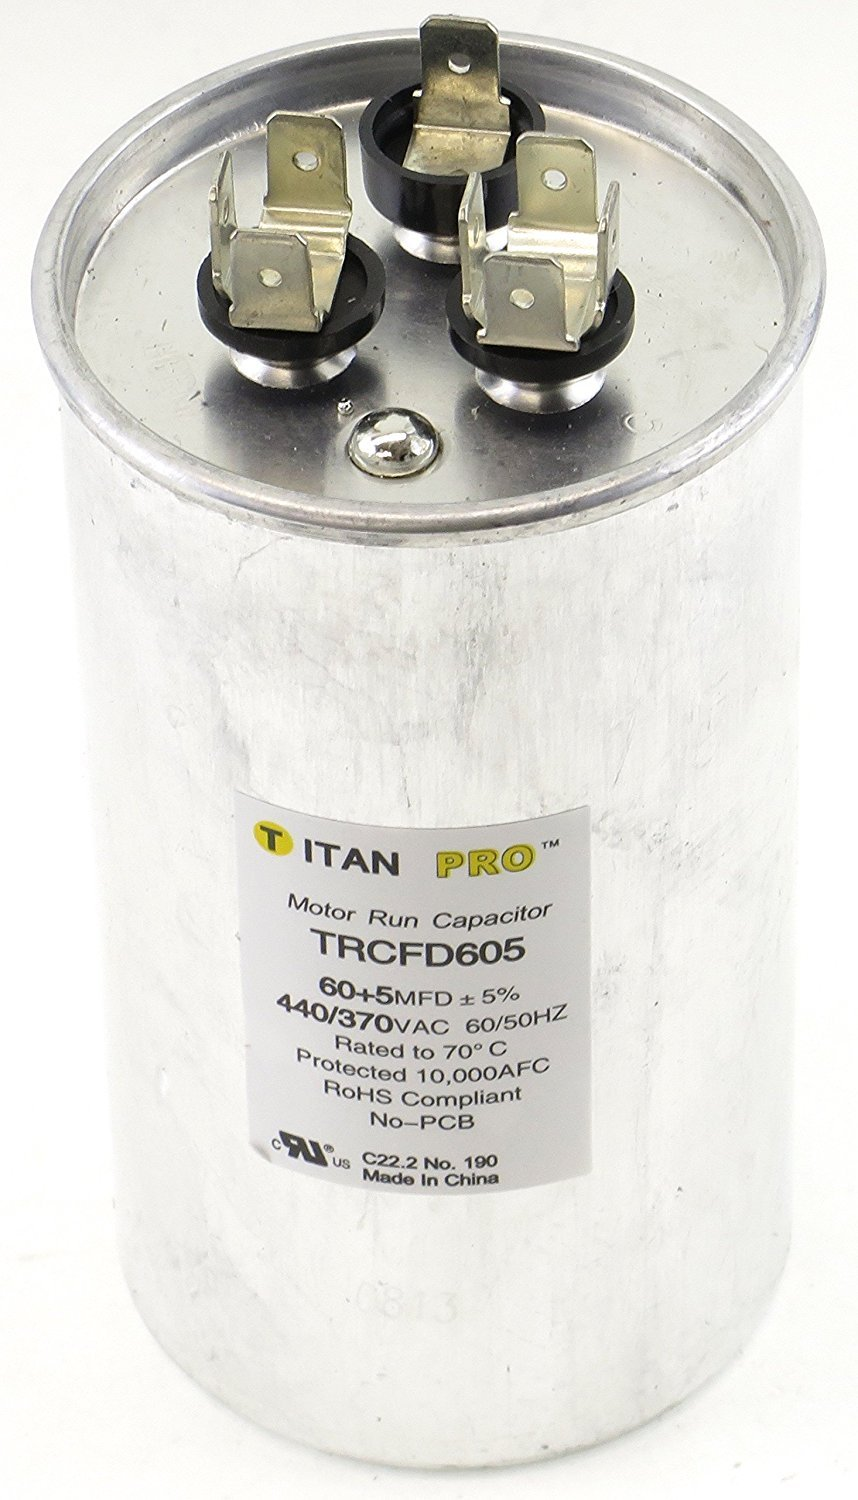 Titan TRCFD605 Dual Rated Motor Run Capacitor Round MFD 60/5 Volts 440/370